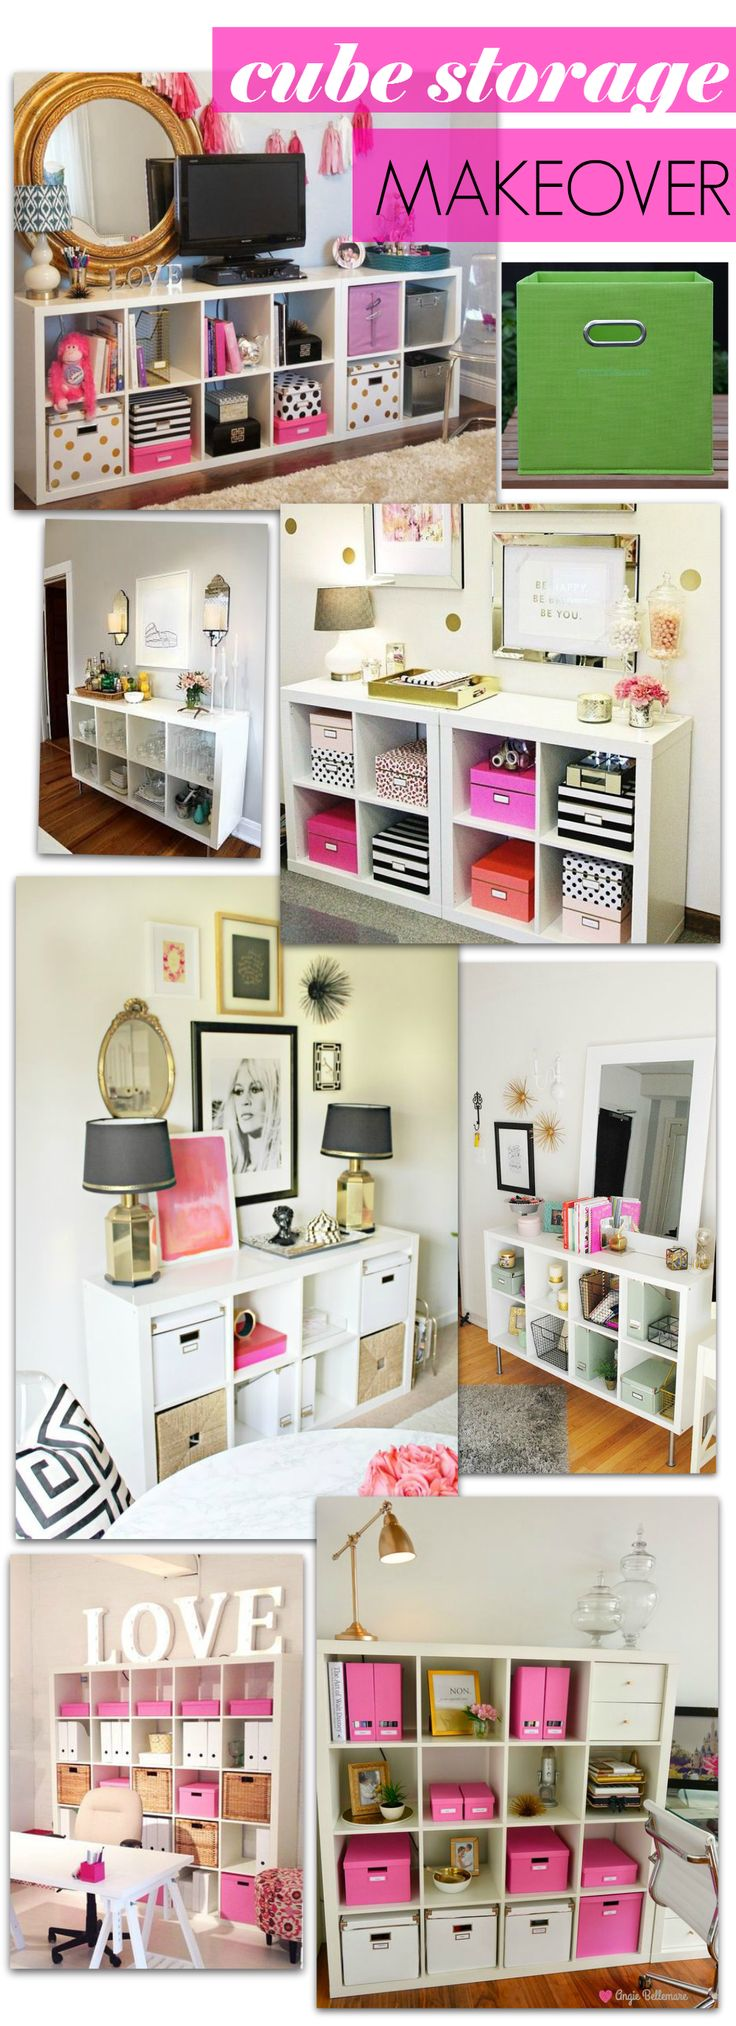 Best 25+ Girls room storage ideas on Pinterest | Big girl toys ...